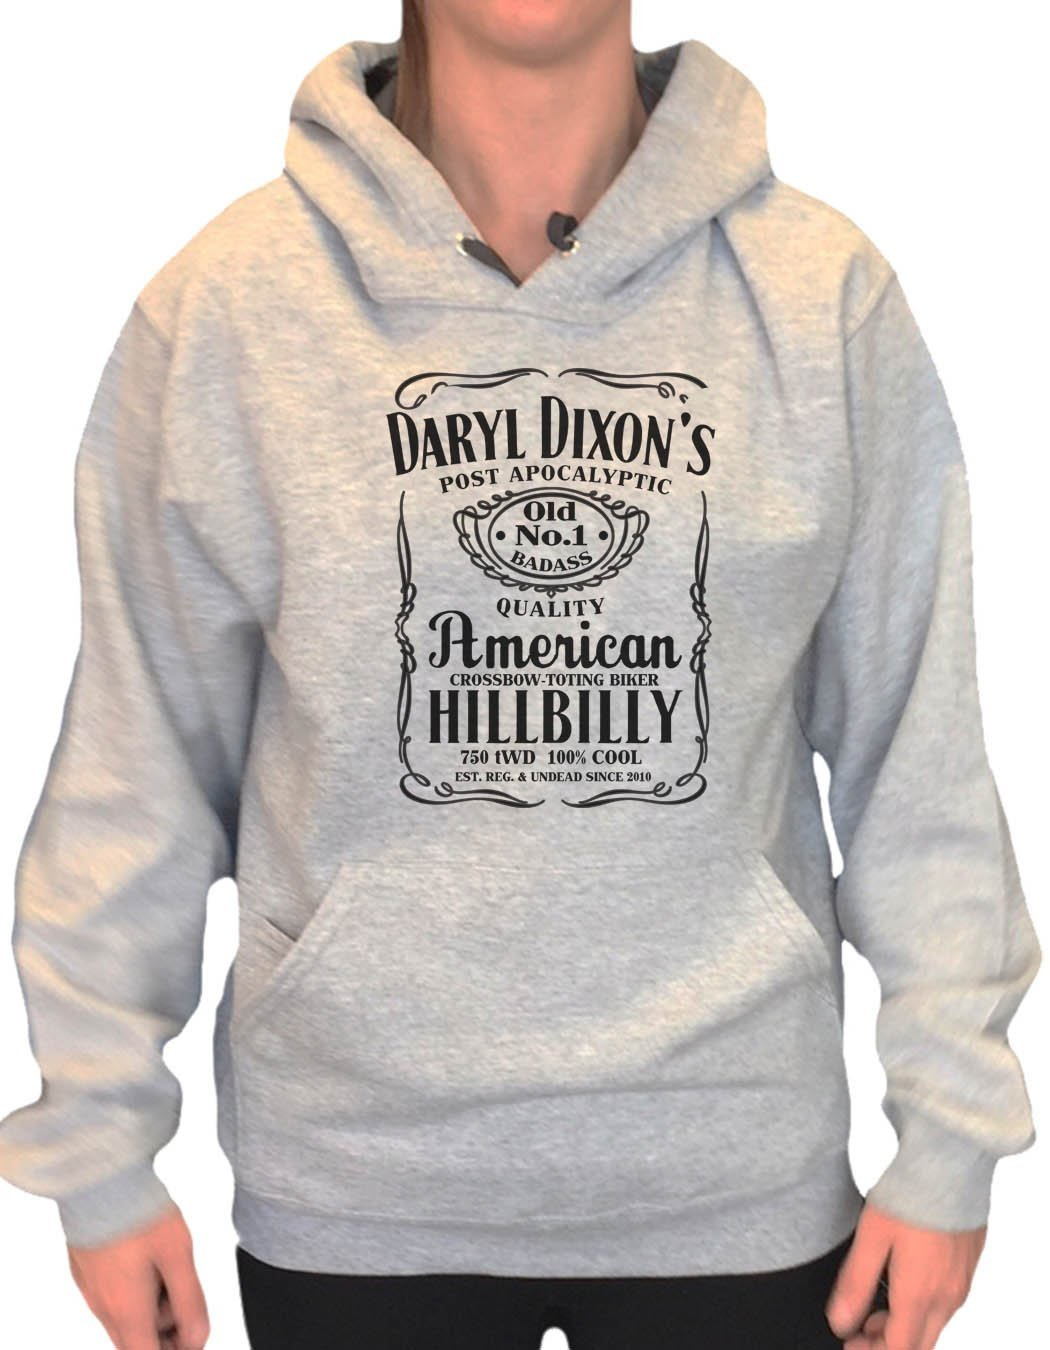 UNISEX HOODIE - Daryl Dixon's American Hillbilly - FUNNY MENS AND WOMENS HOODED SWEATSHIRTS - 2309 Funny Shirt Small / Heather Grey